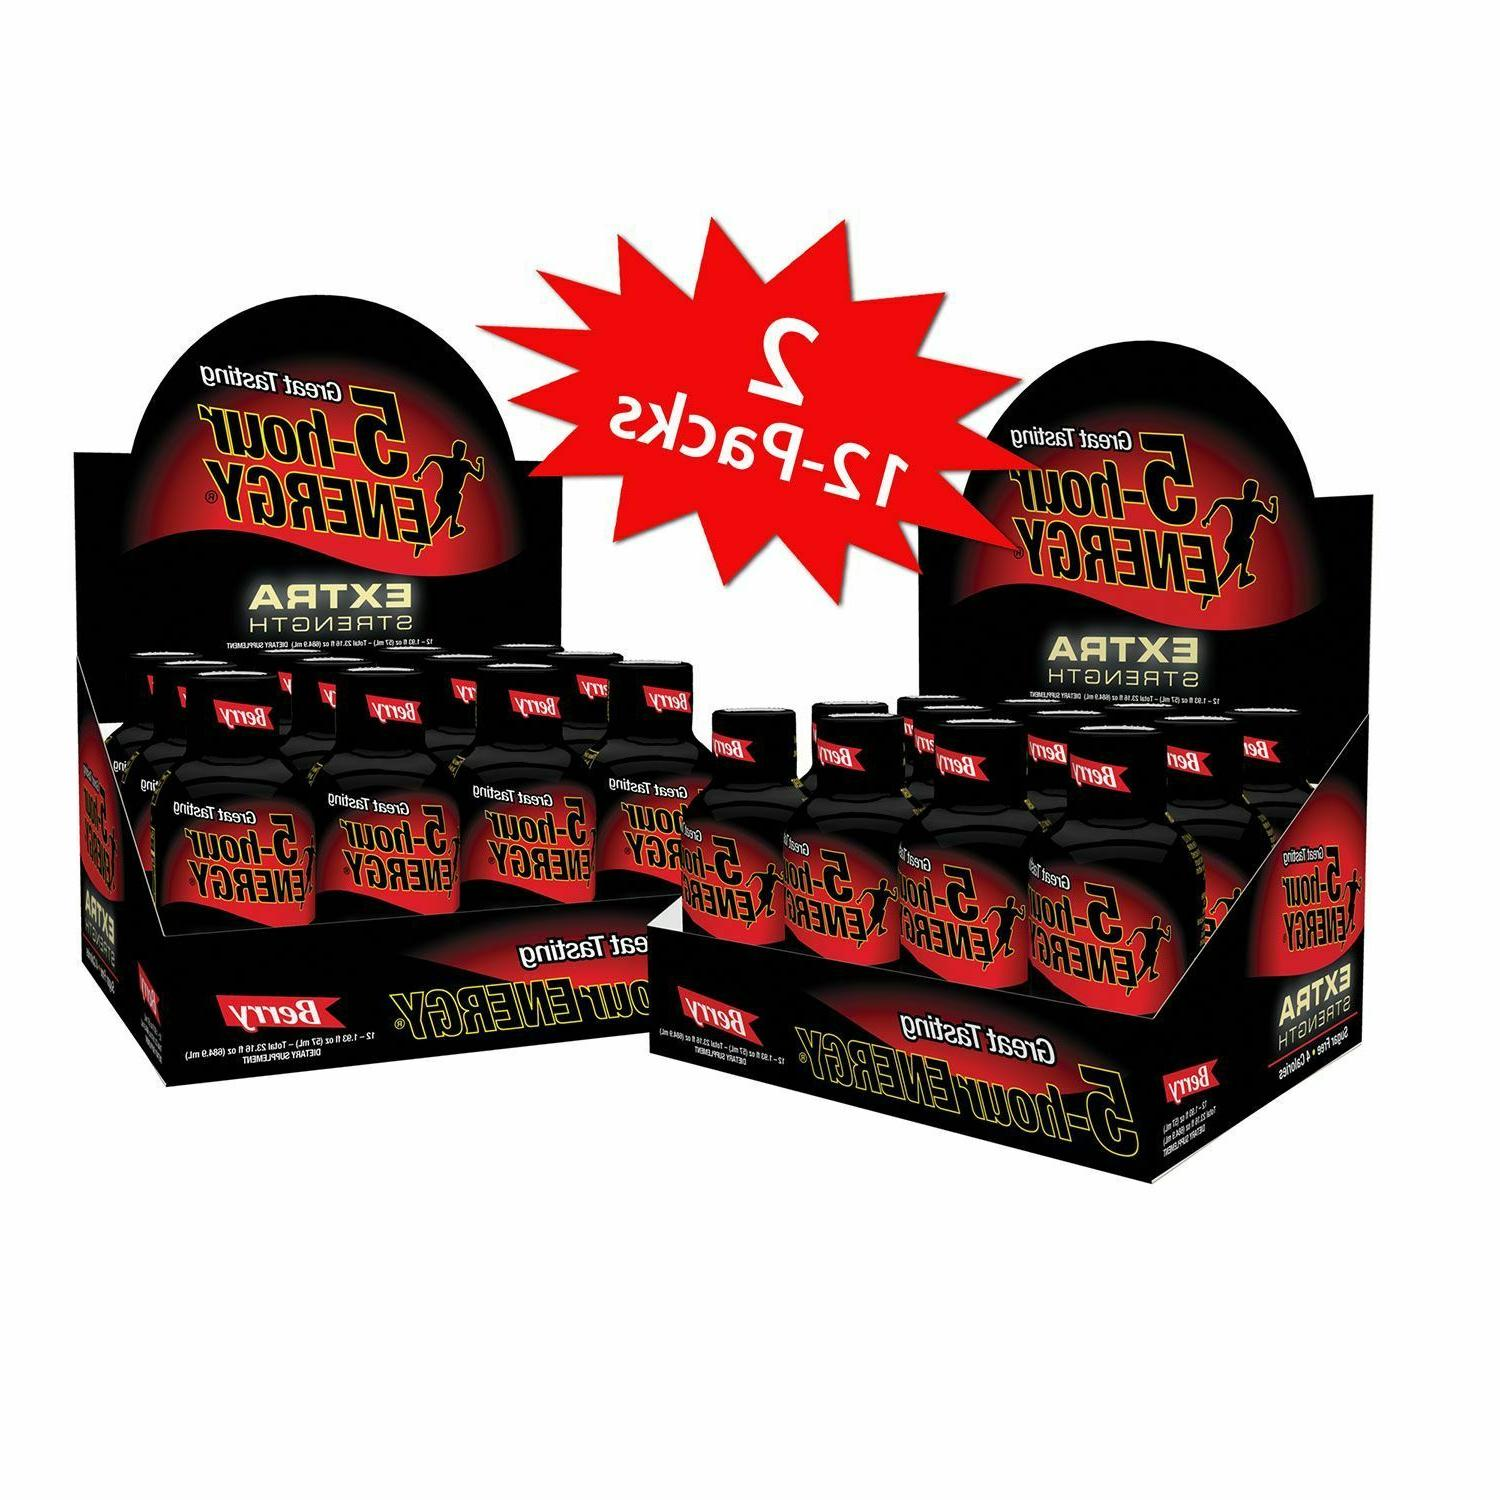 5-Hour Energy Strength Berry shipping